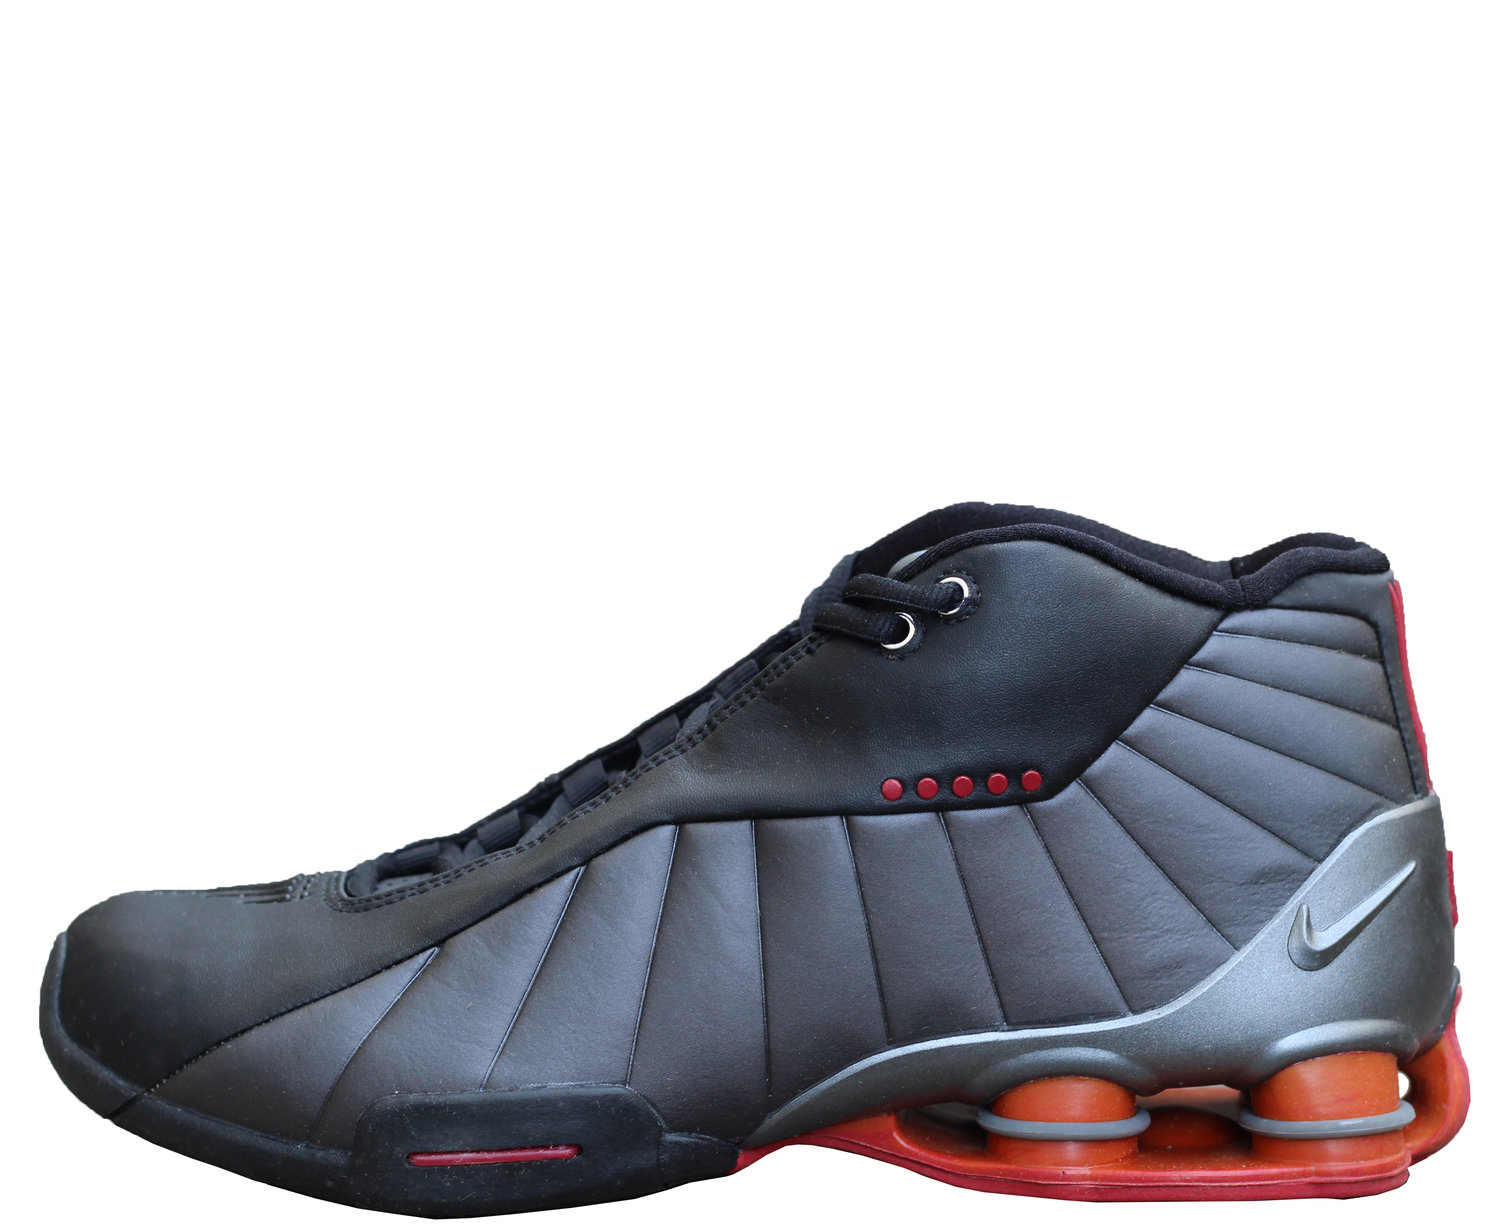 timeless design 2dd73 49f45 Nike Shox BB4 Black   Graphite   Red VC (Size 9.5) DS — Roots